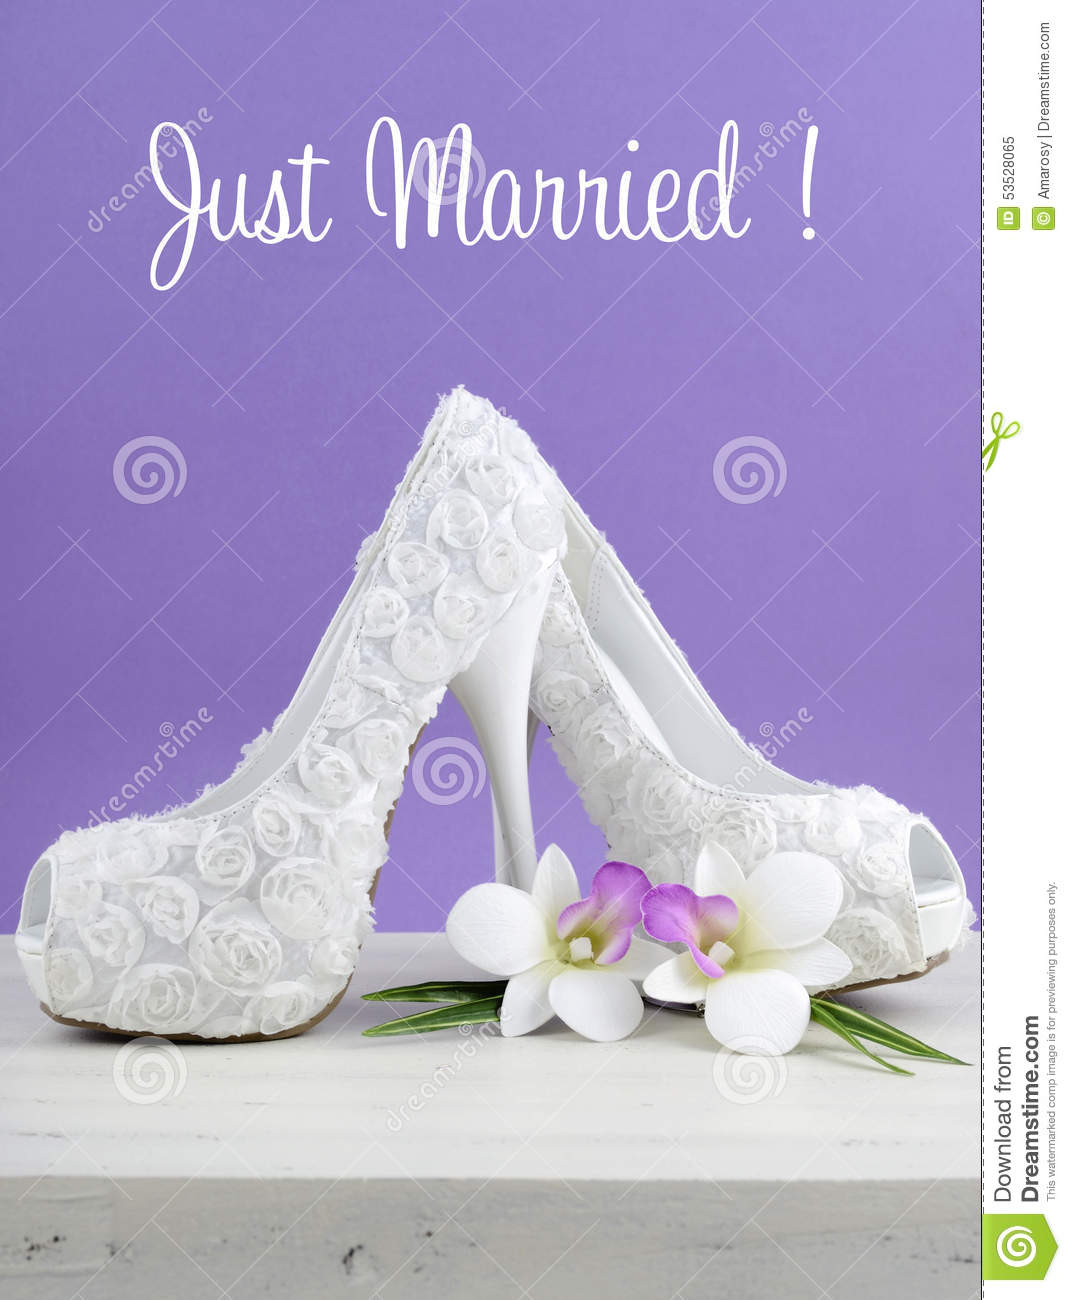 6737c9de634 Wedding theme white floral bridal shoes with flowers on shabby chic white  table and purple background.